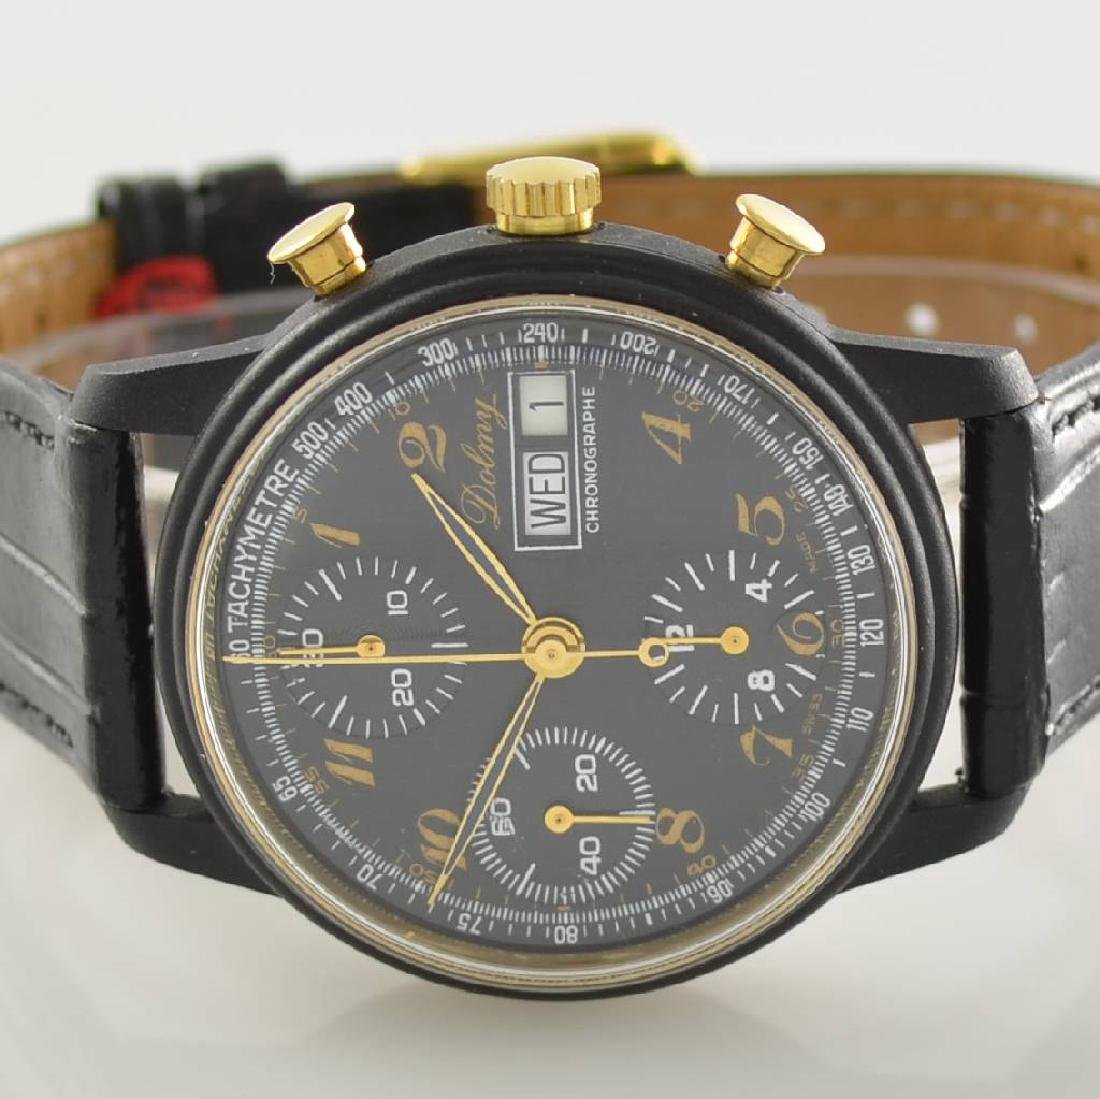 DOLMY manual wound chronograph - 2